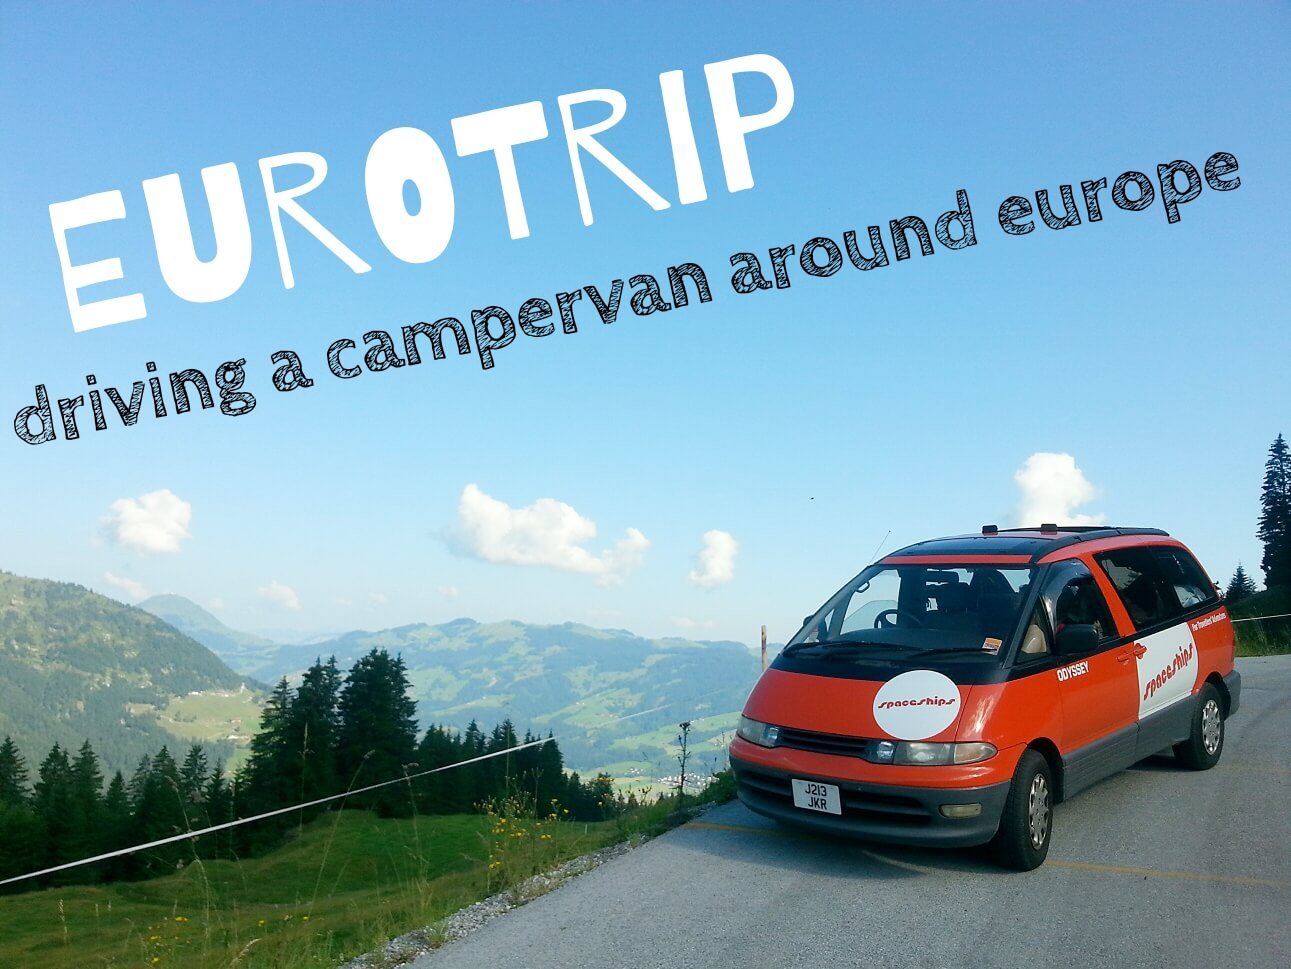 2c907088a3 Europe Campervan Itinerary  Eurotrip - Driving a Campervan around Europe